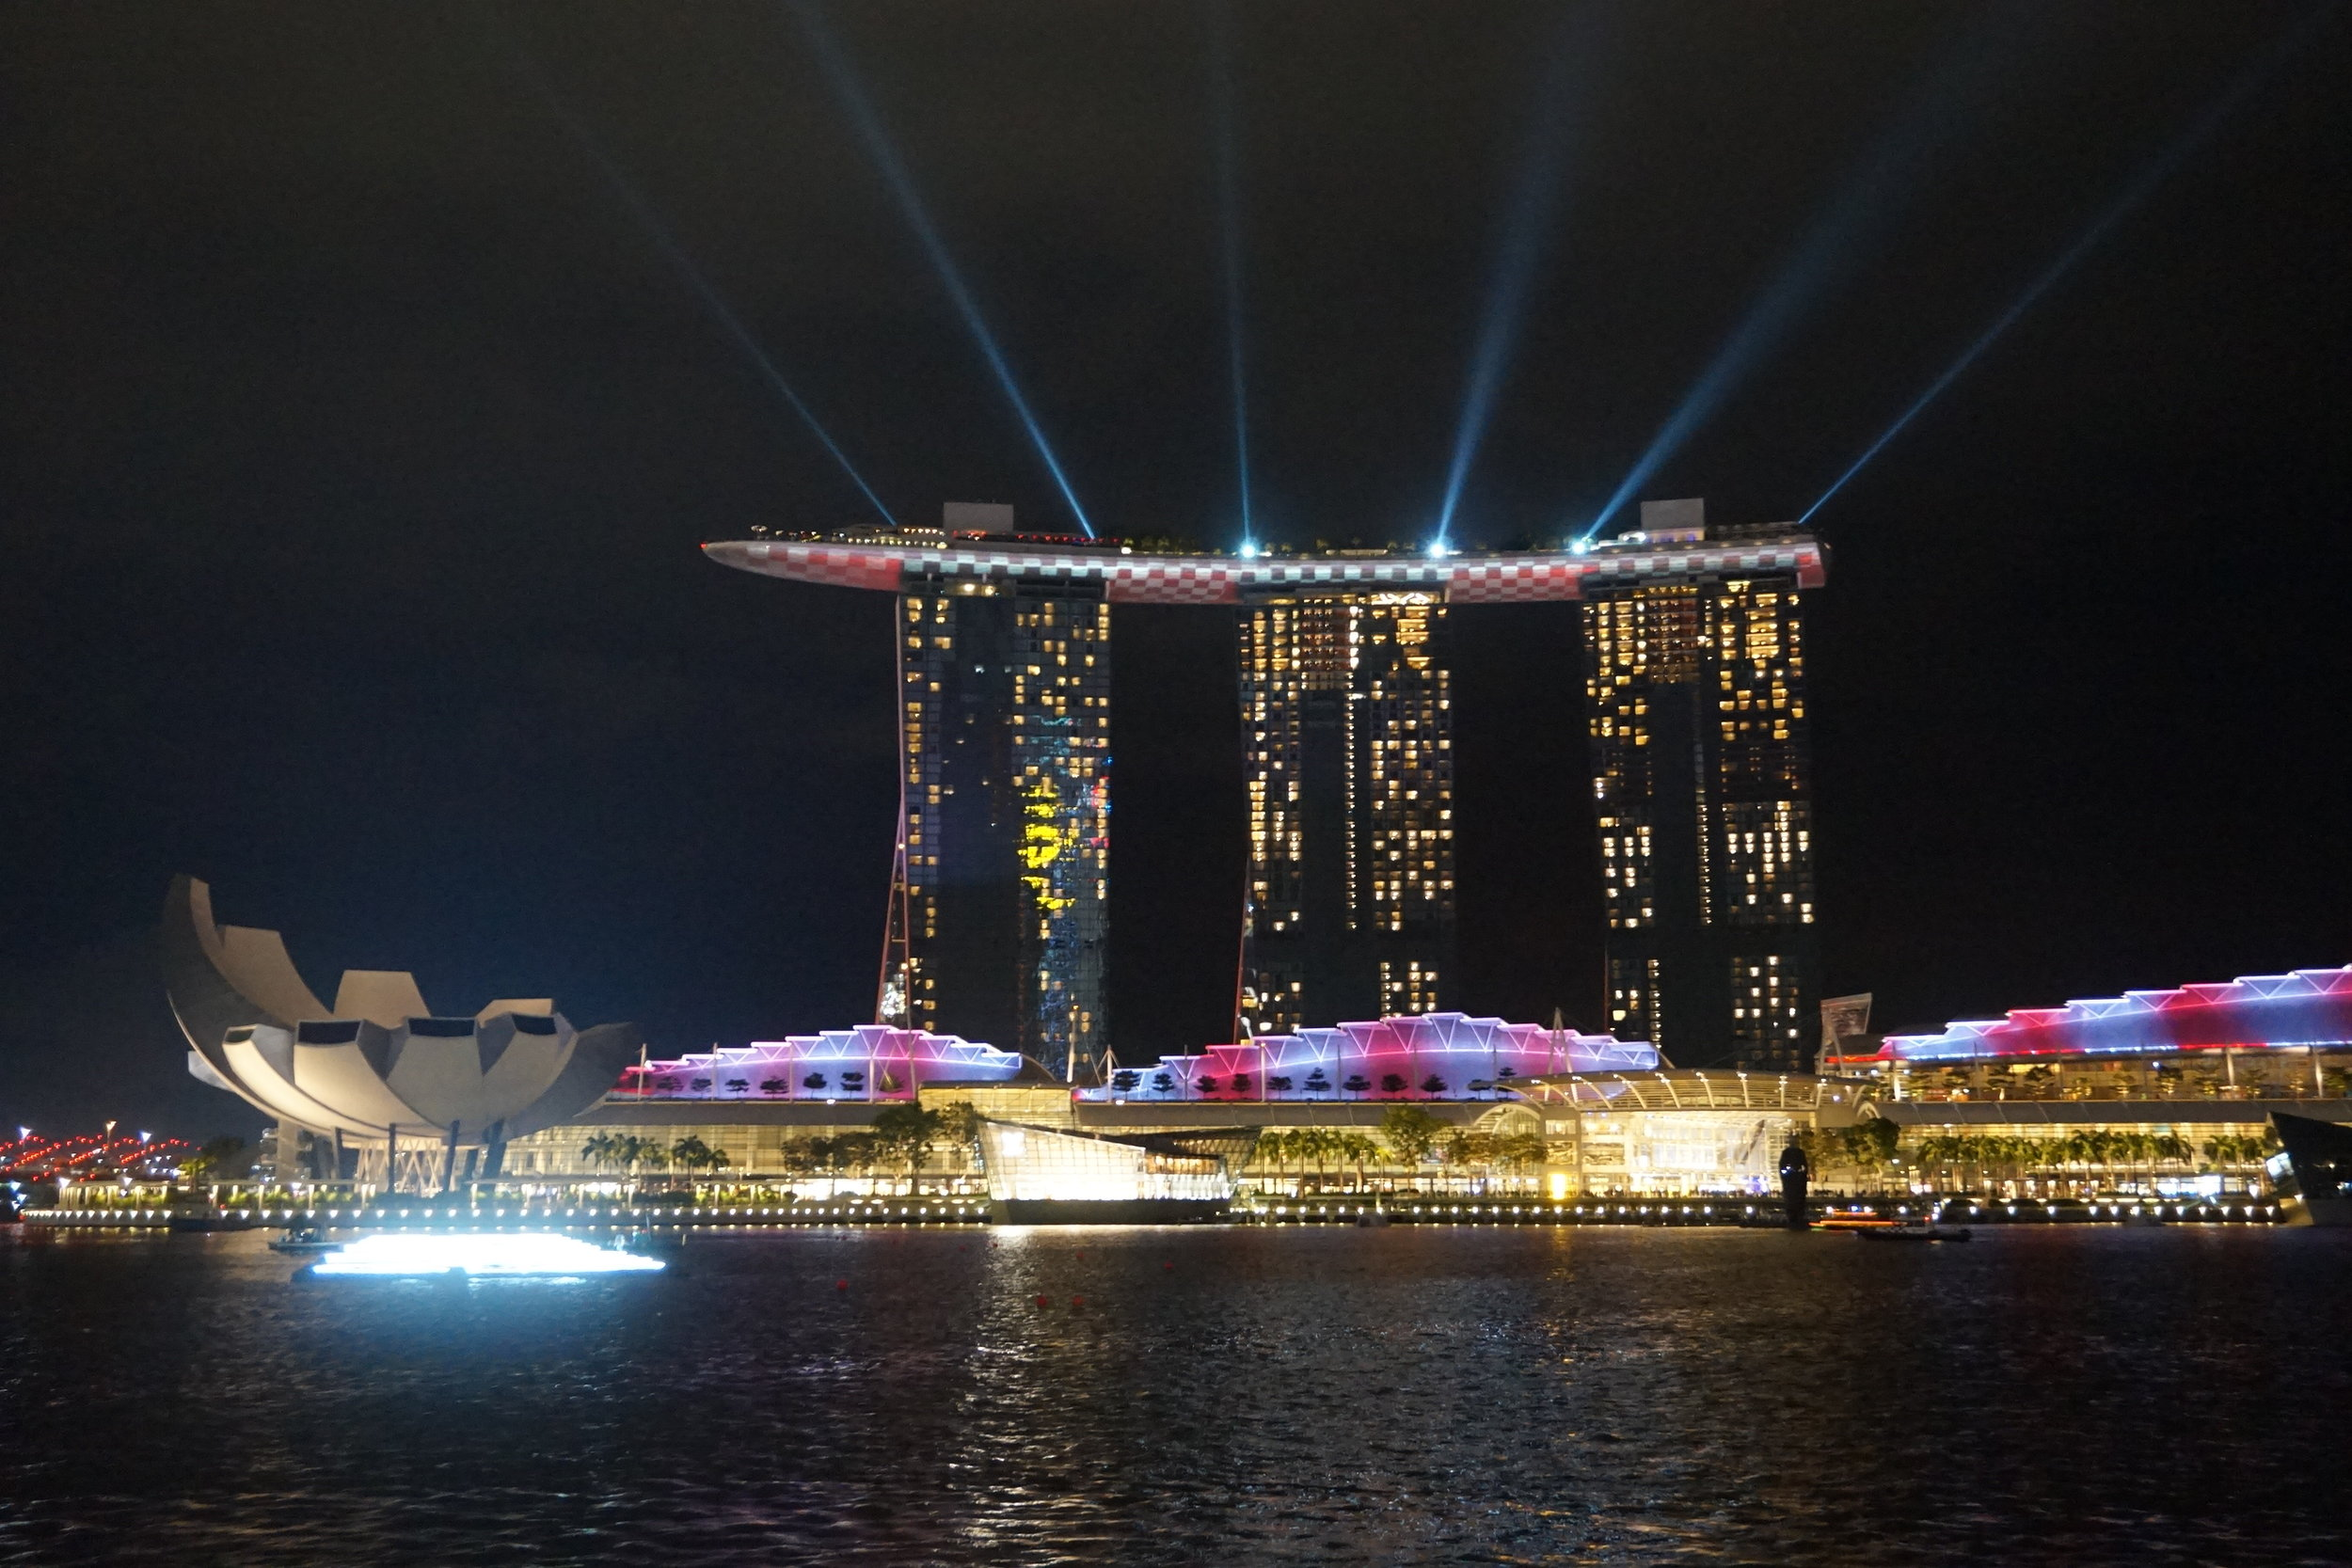 At the Singapore Grand Prix the Marina Bay Sands hotel is lit up like a flag